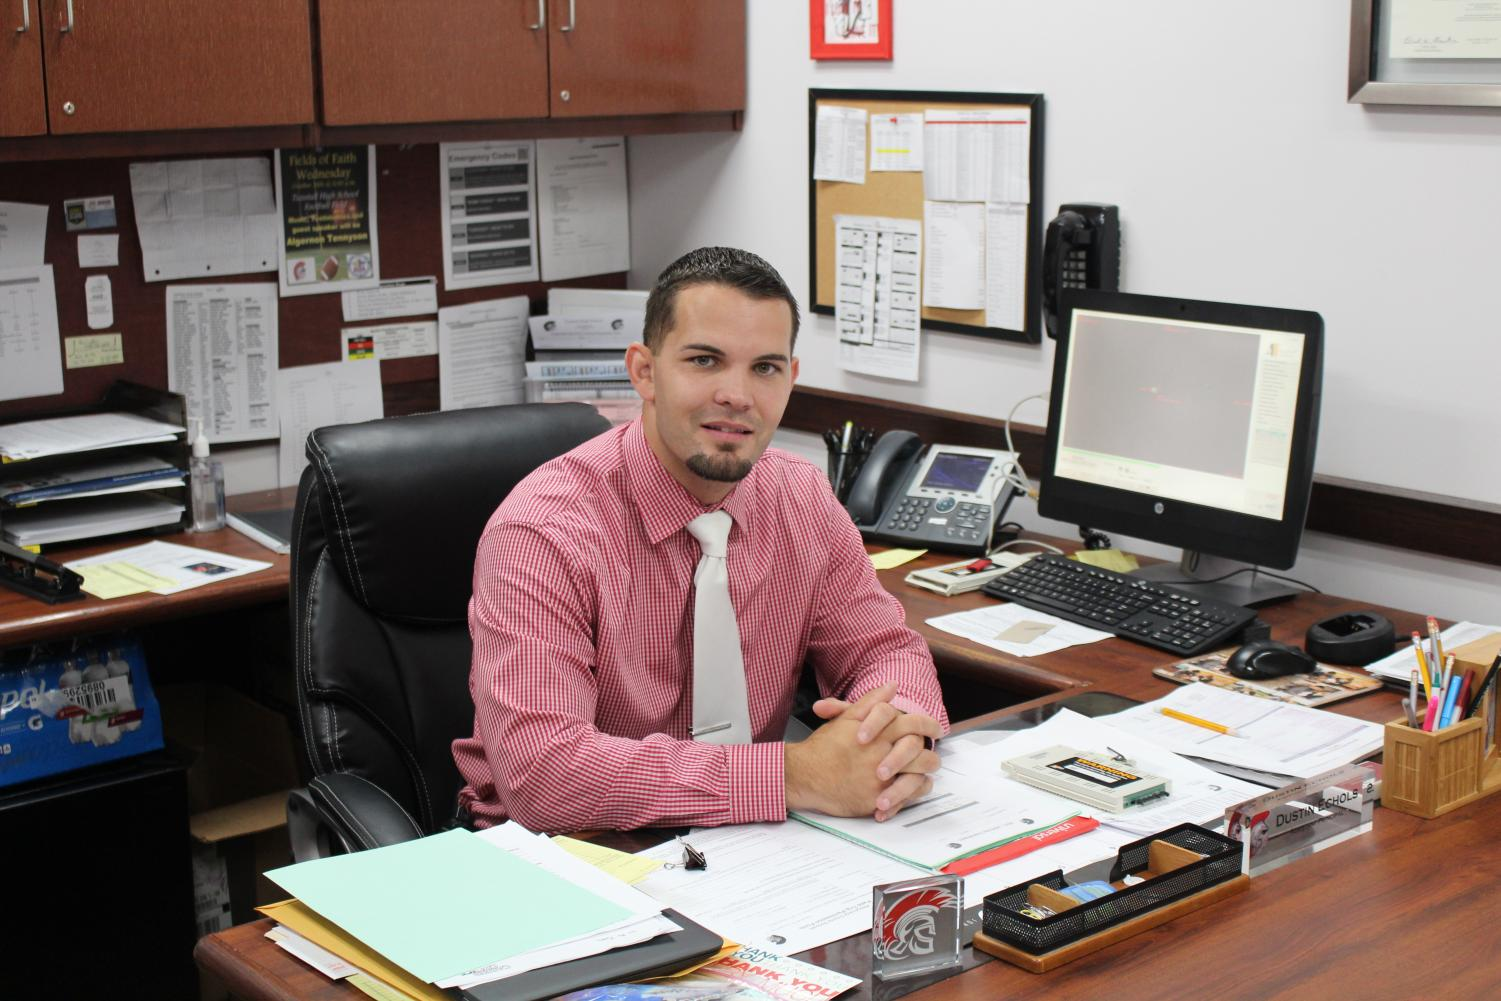 Mr. Echols joins Tunstall administration for his first full year.